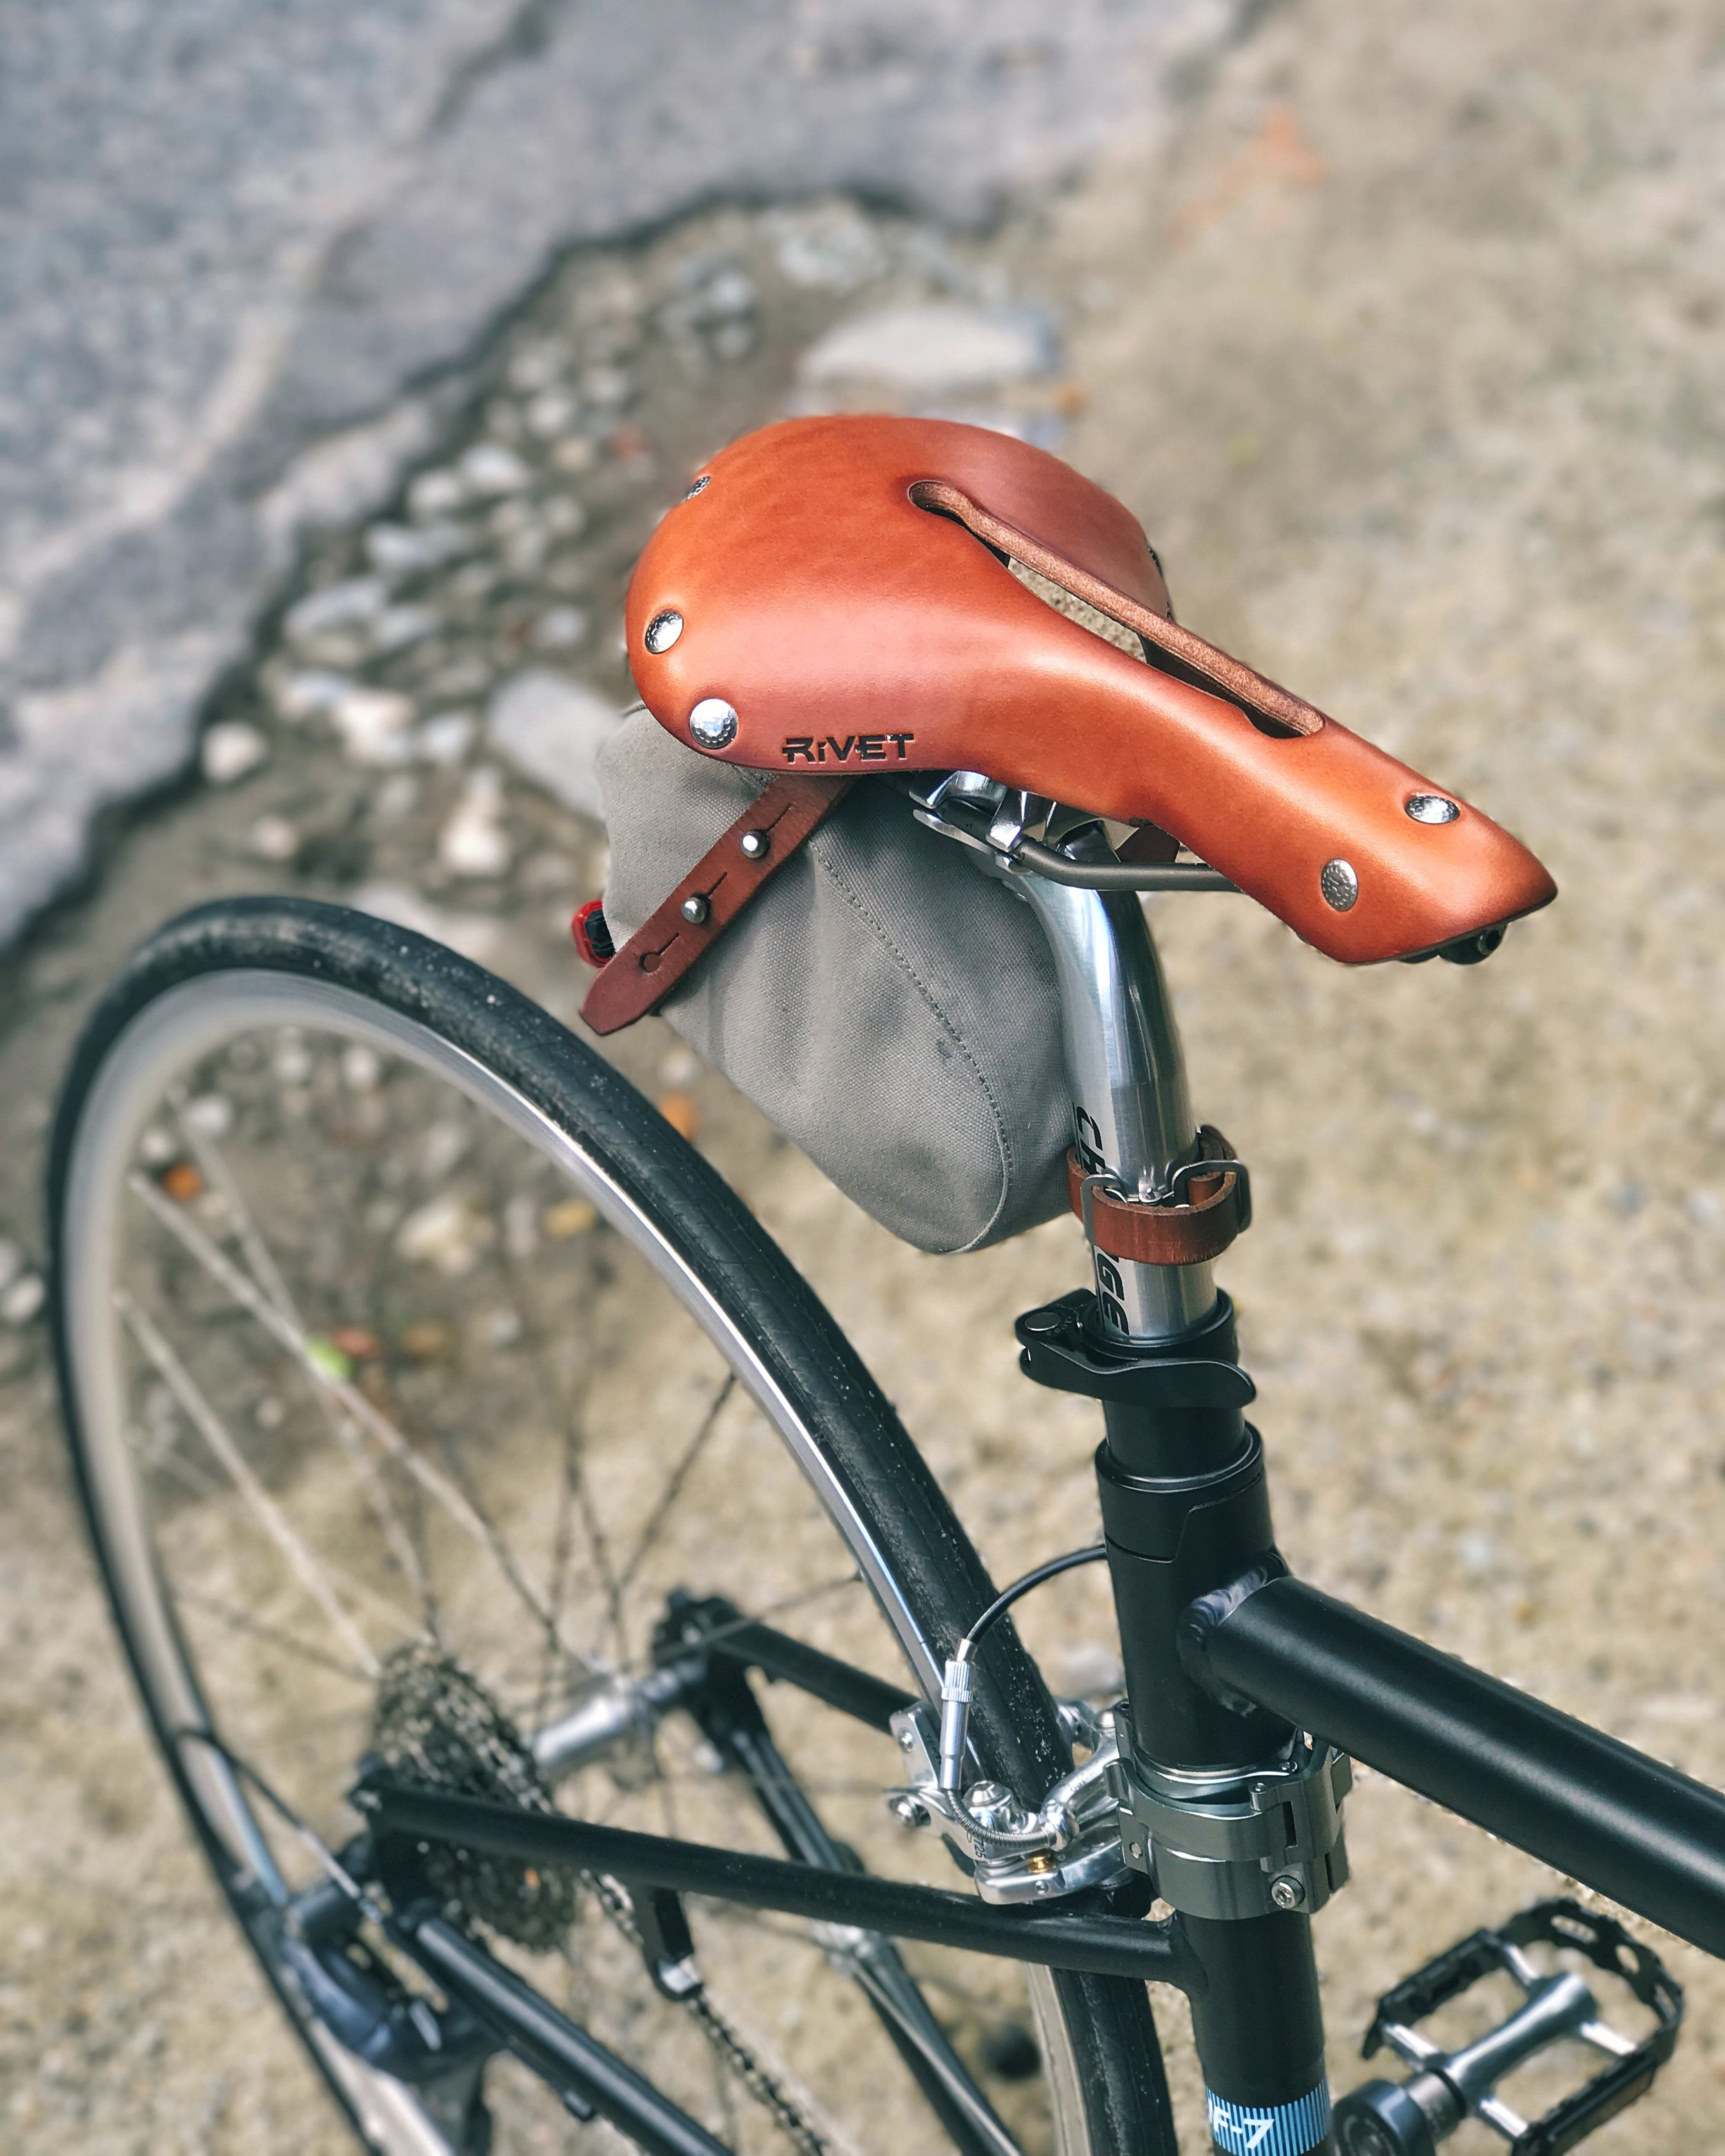 Here's a sneak peek at one of my upgrades. This is the Independence leather saddle from Rivet Cycle Works with titanium rails, weighing 360g.